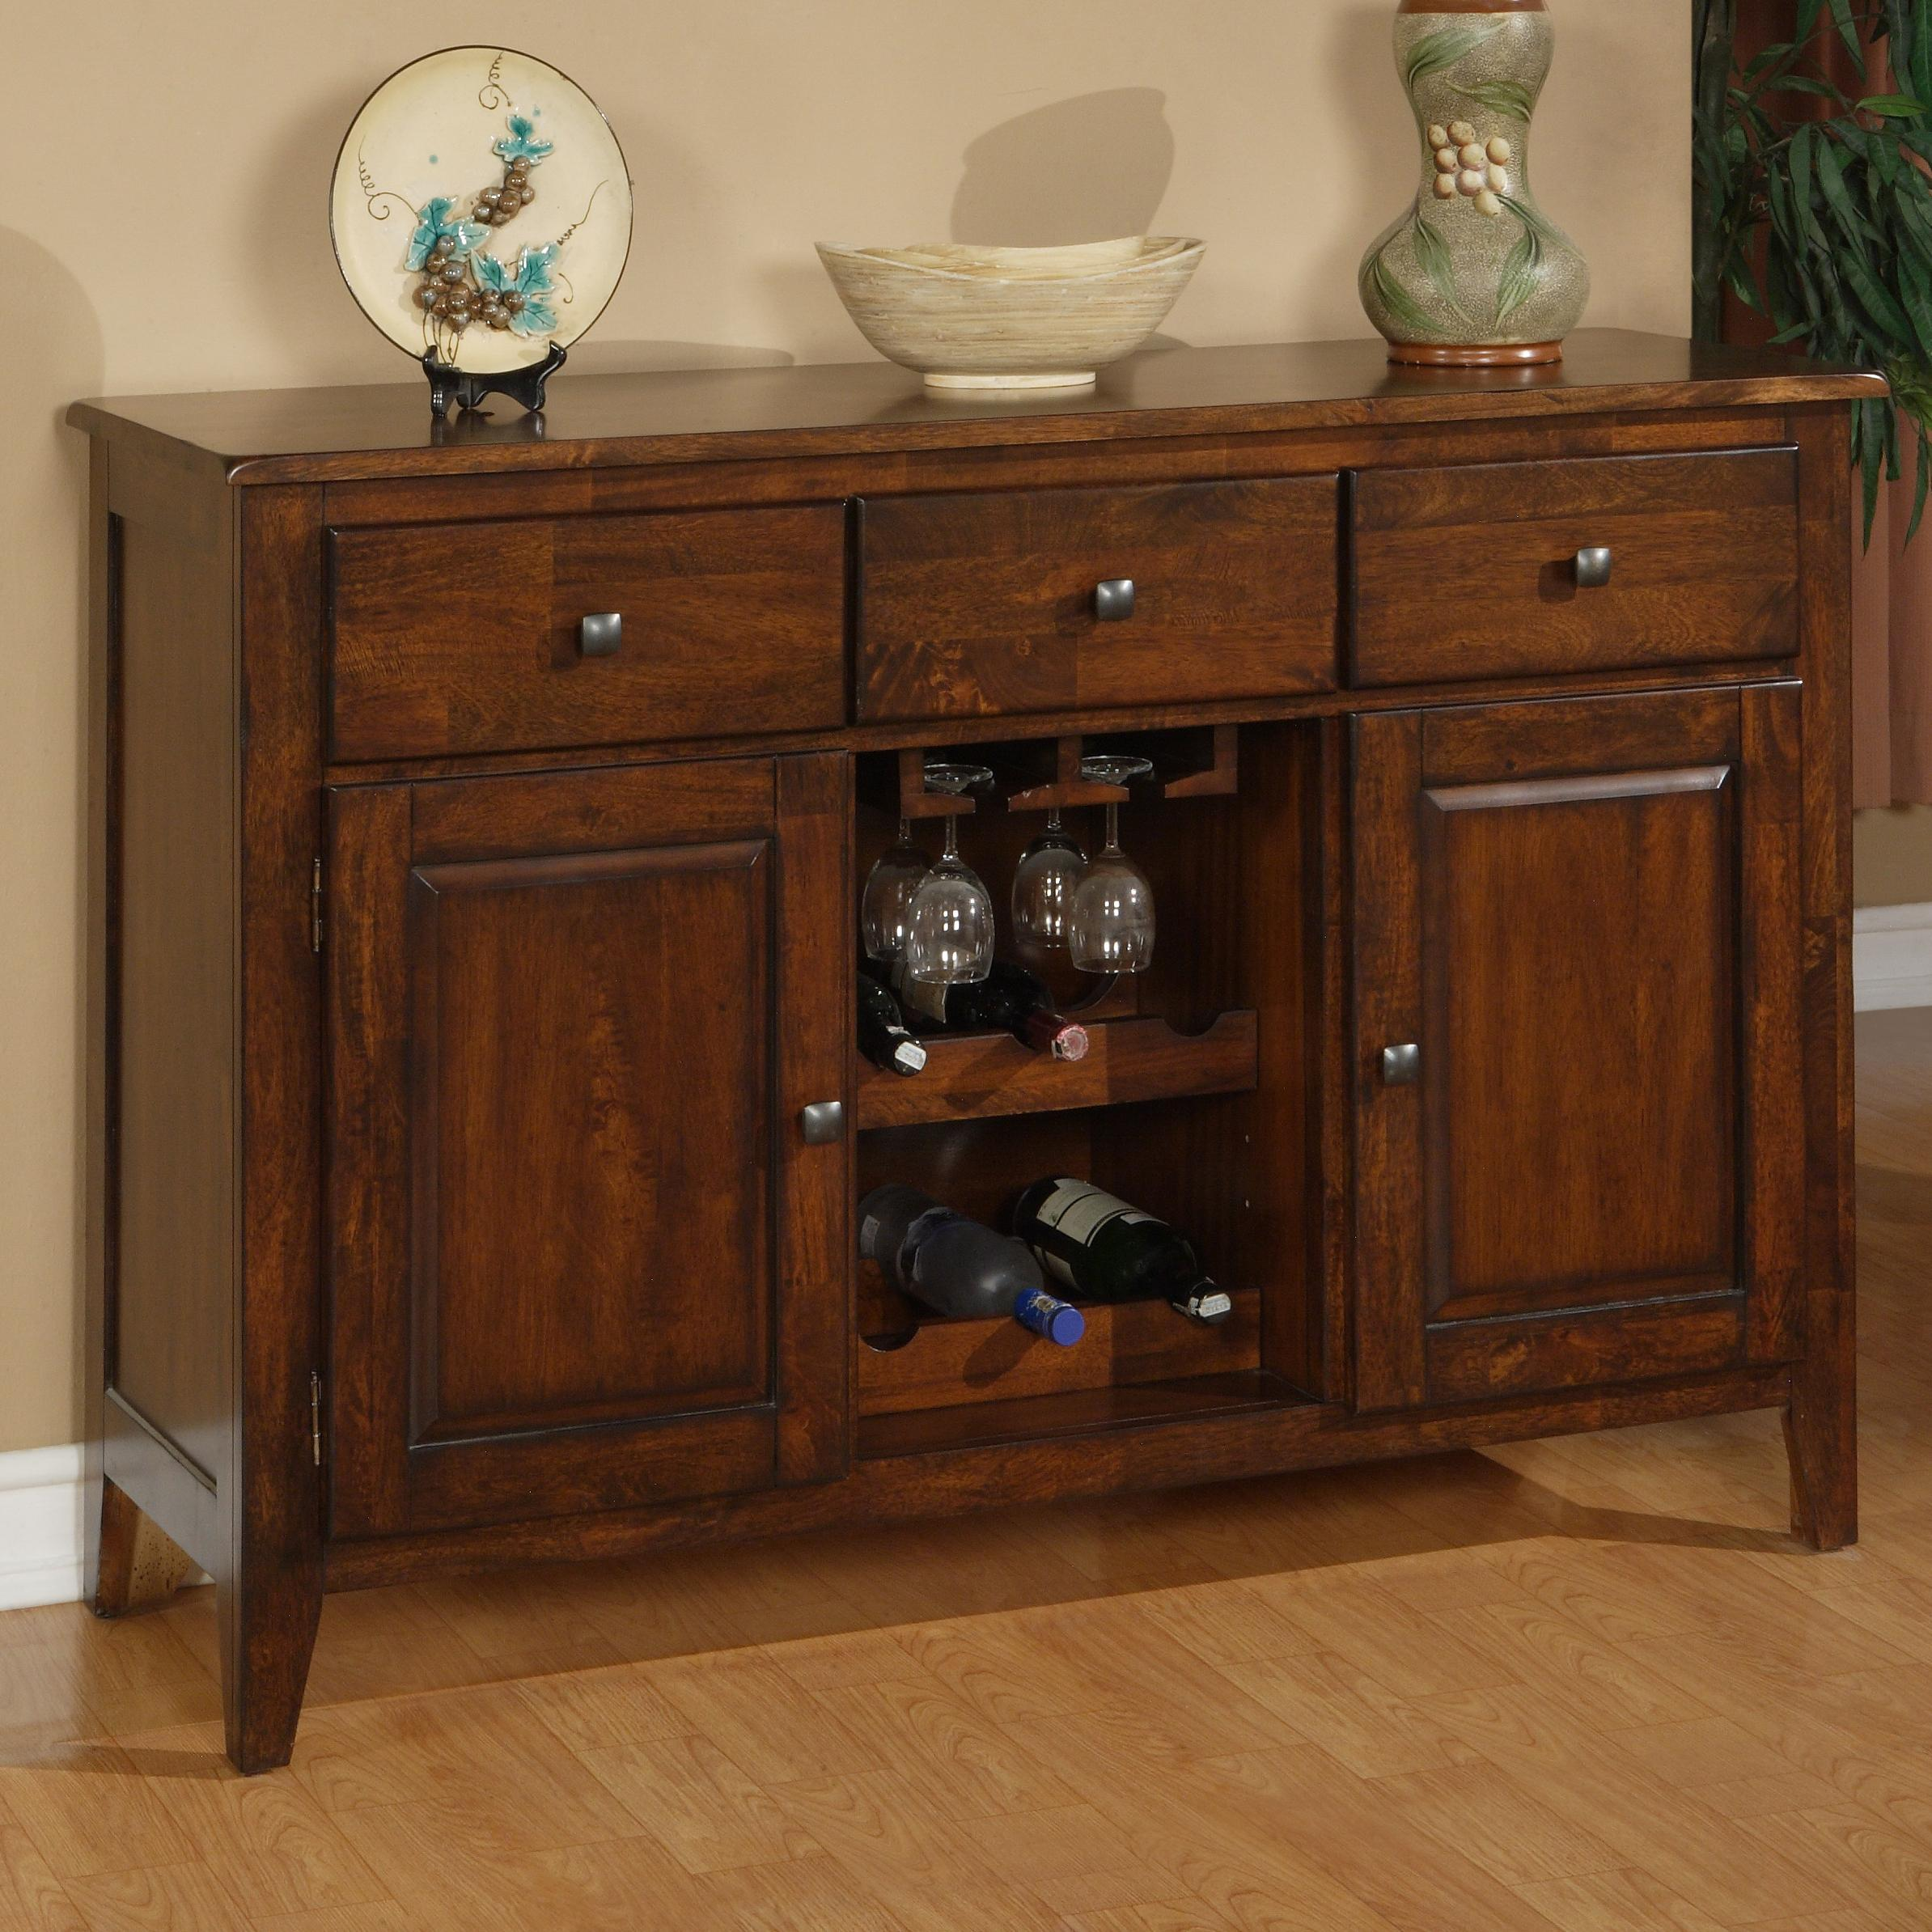 Holland House 1279 Mango Wood Dining Room Sideboard | FMG - Local ...